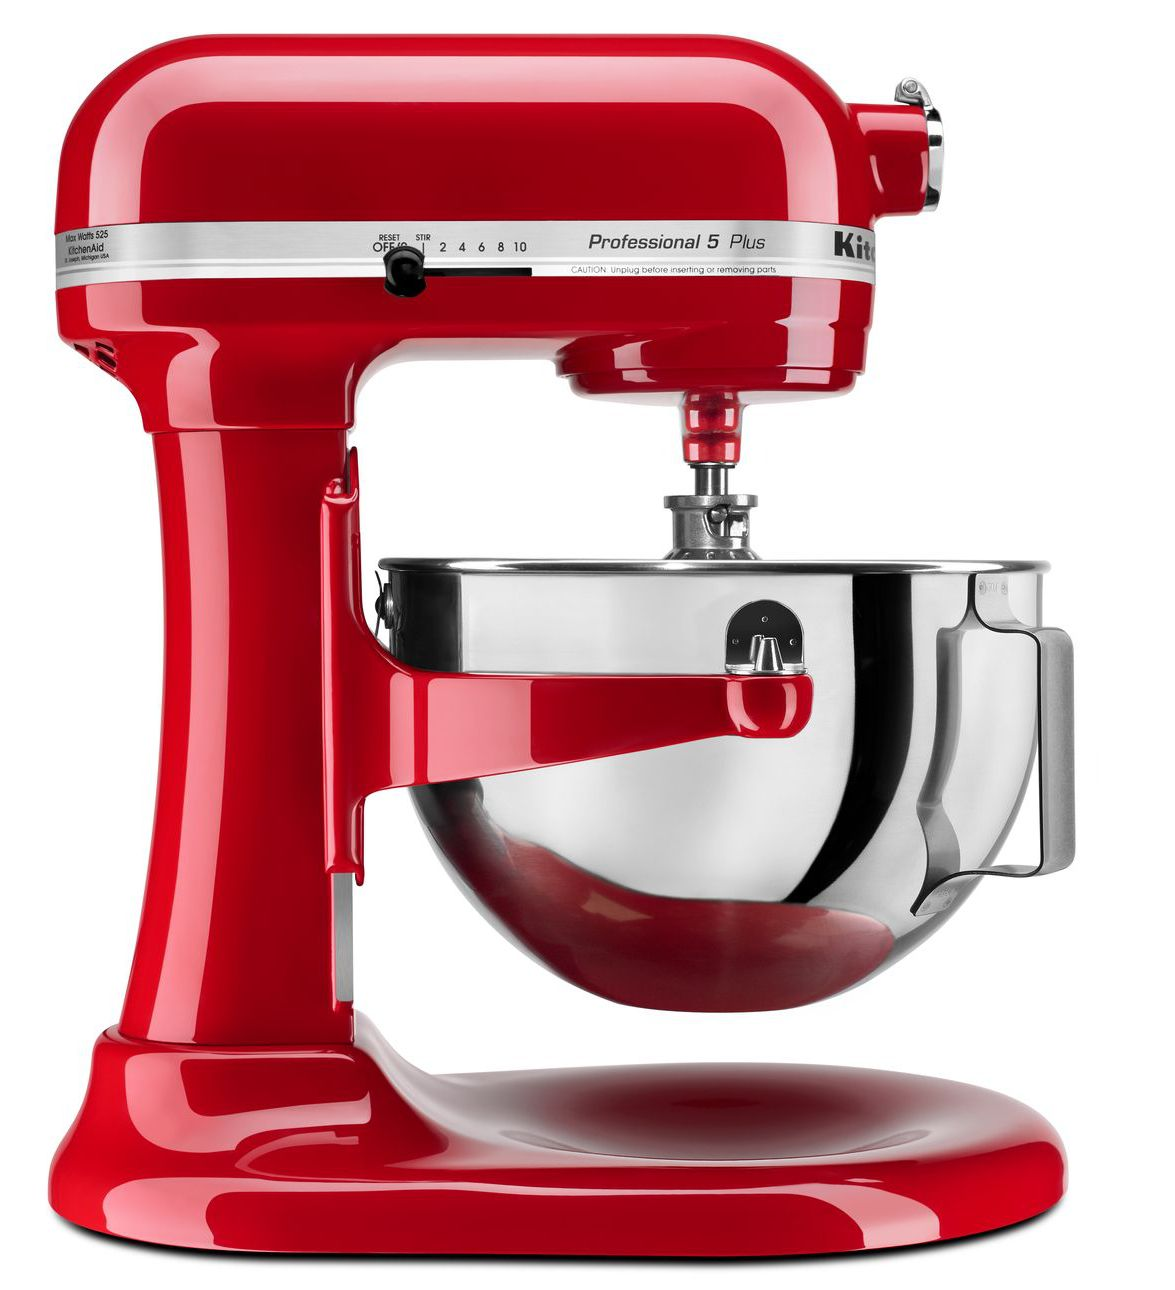 New Kitchenaid 174 Professional 5 Plus Series 5 Quart Bowl